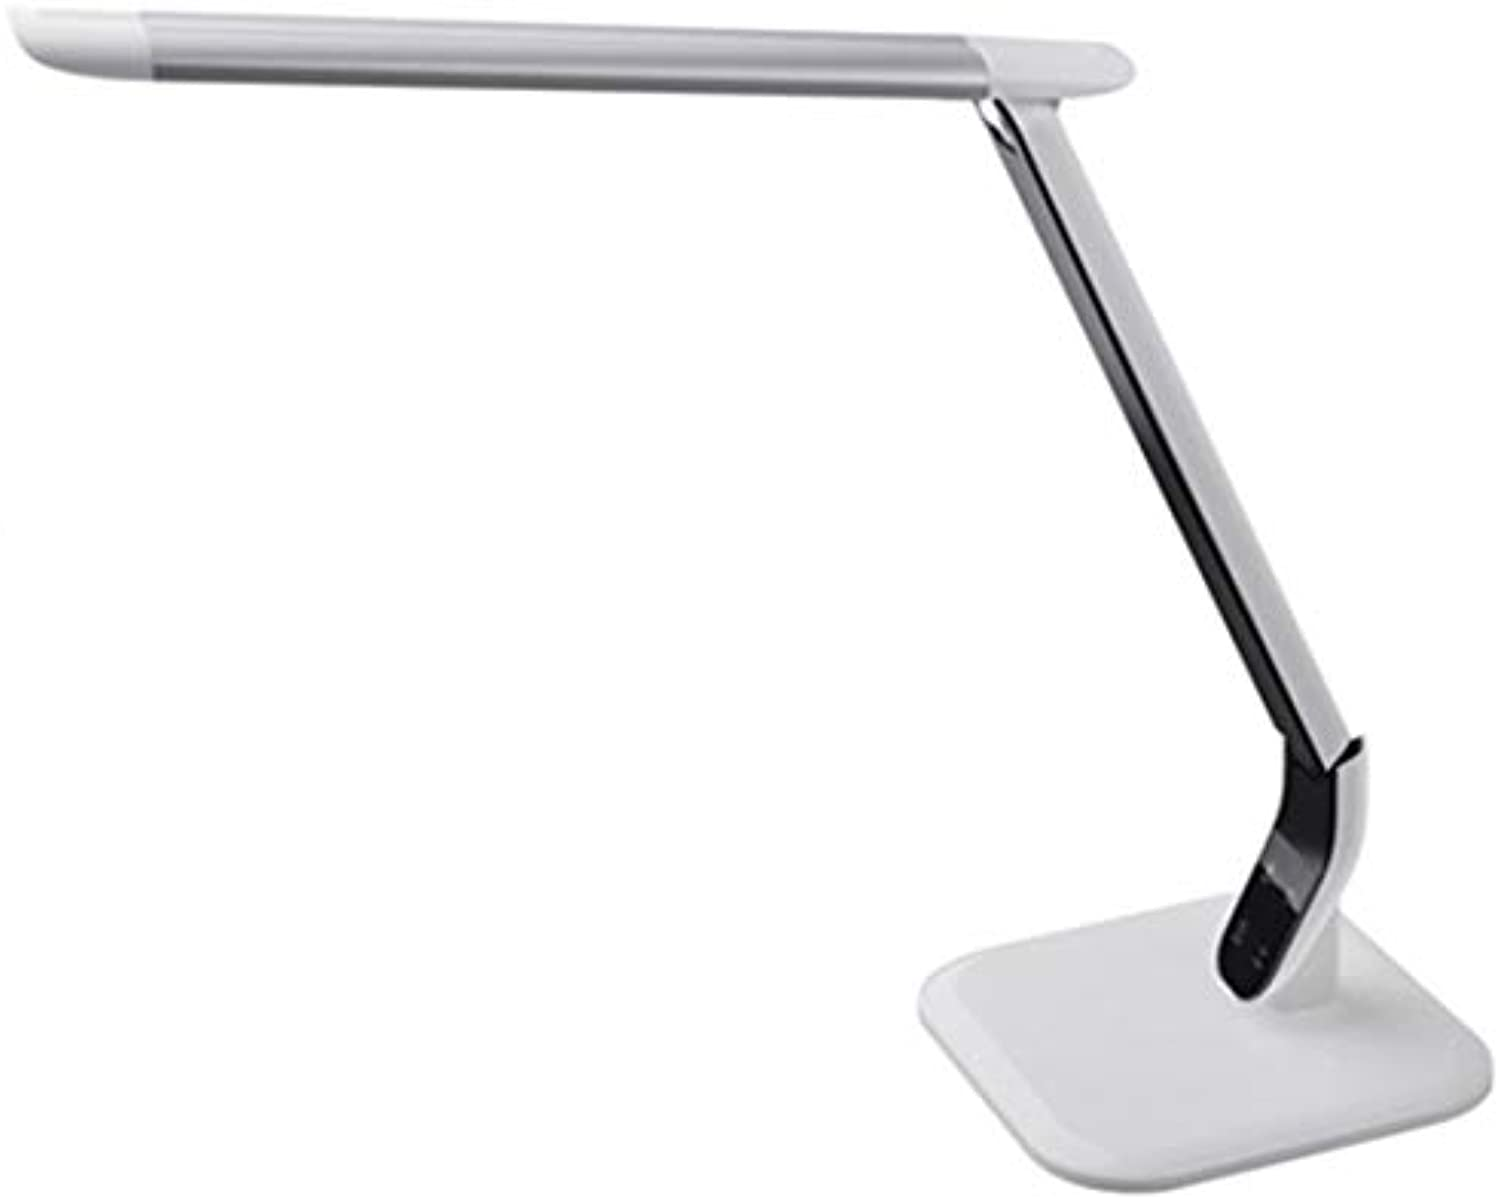 LED eye protection charging table lamp, five-speed dimming, learning, working, reading lamp